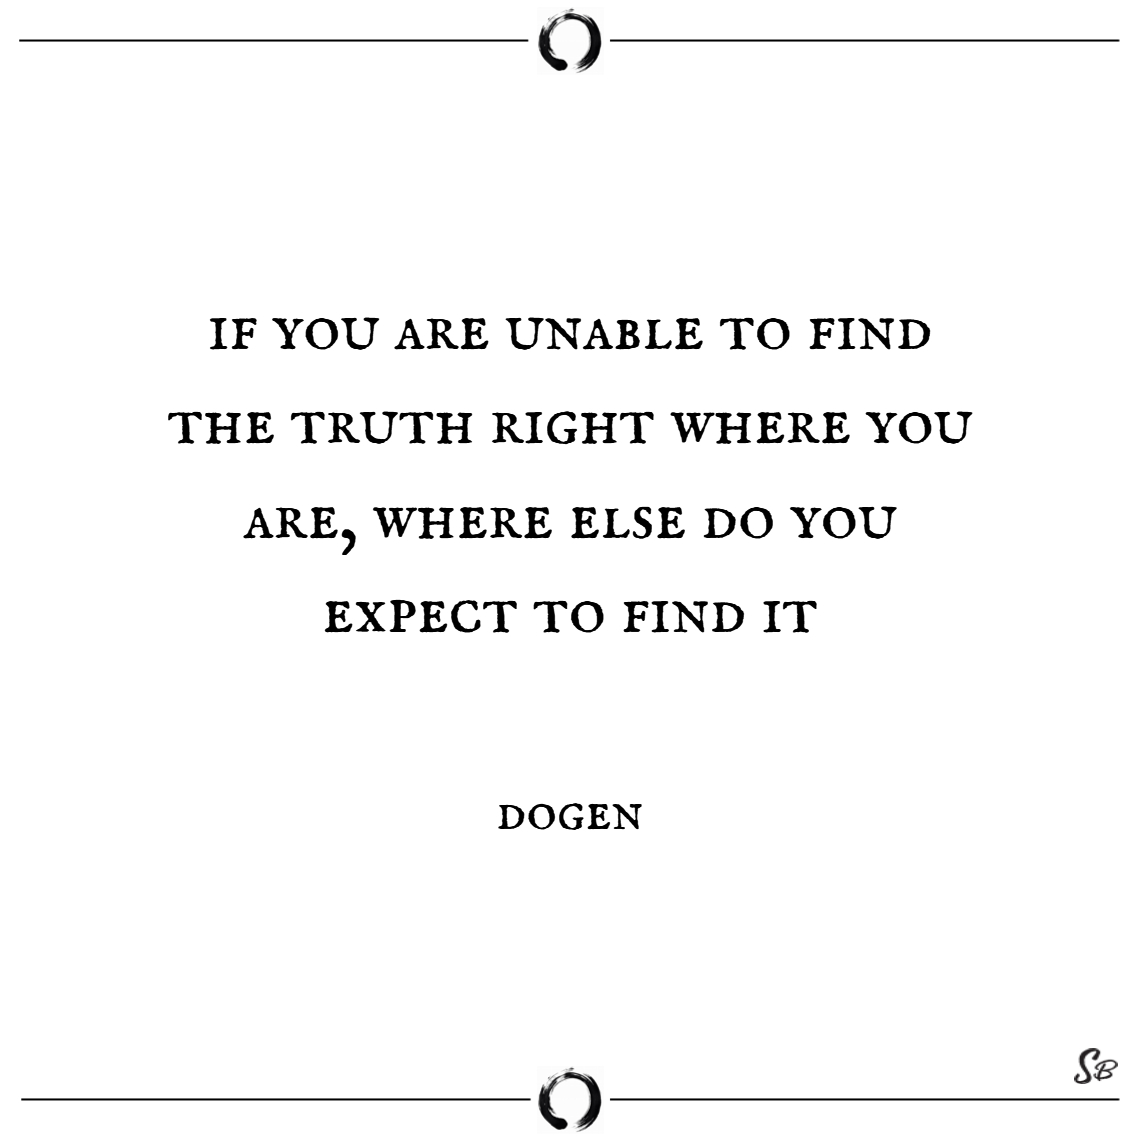 If you are unable to find the truth right where yo